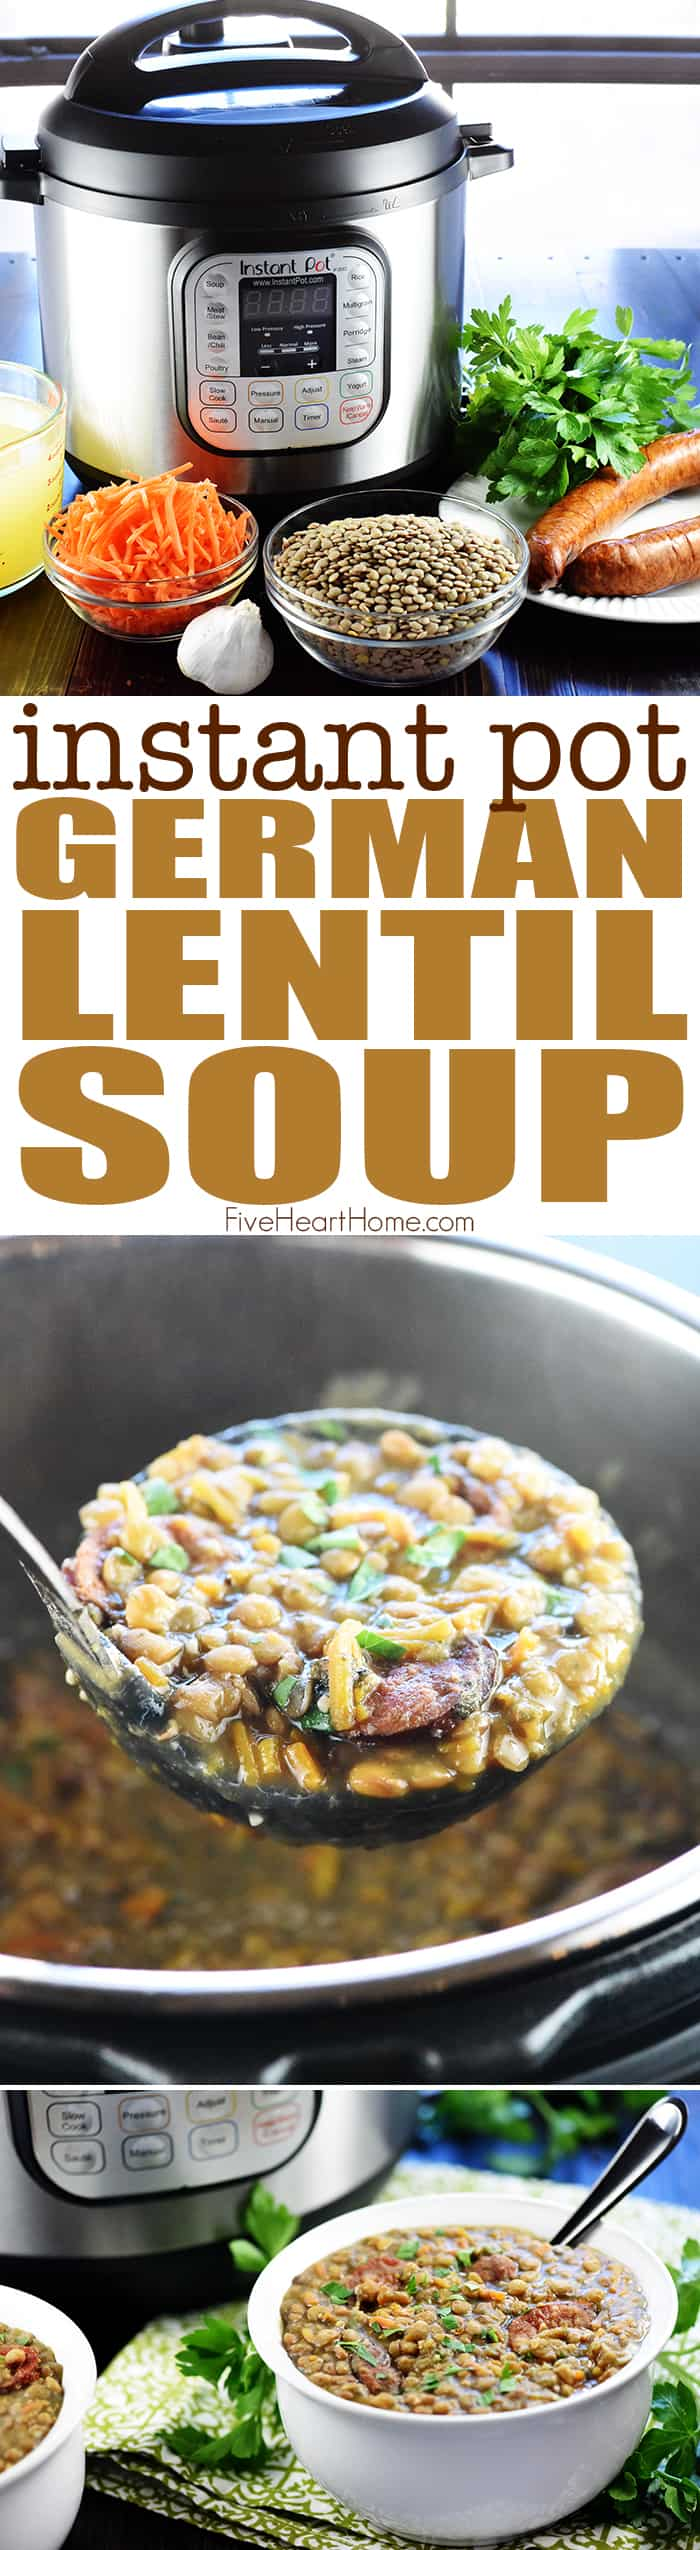 Instant Pot German Lentil Soup ~ a savory, hearty pressure cooker recipe loaded with wholesome lentils, healthy carrots, and flavorful garlic, herbs, and spices, with the option of adding sausage or ham! | FiveHeartHome.com